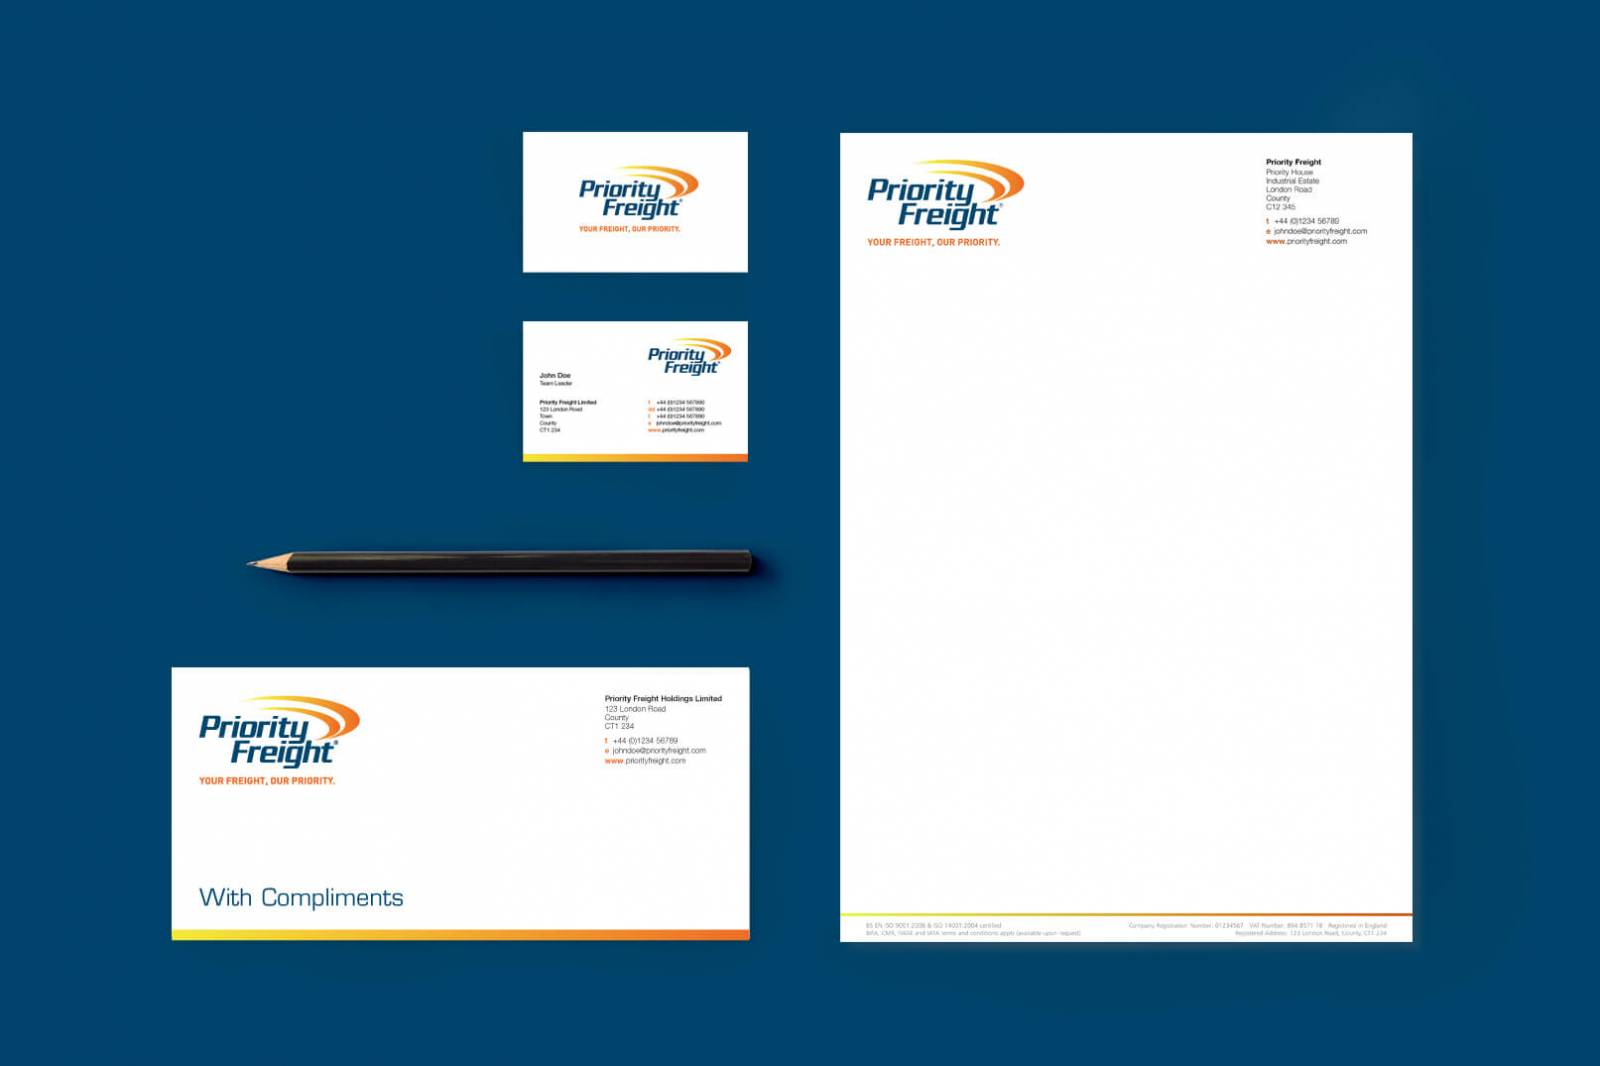 Stationery-Priority-Freight-branding-design-agency-graphic-design-canterbury.jpg